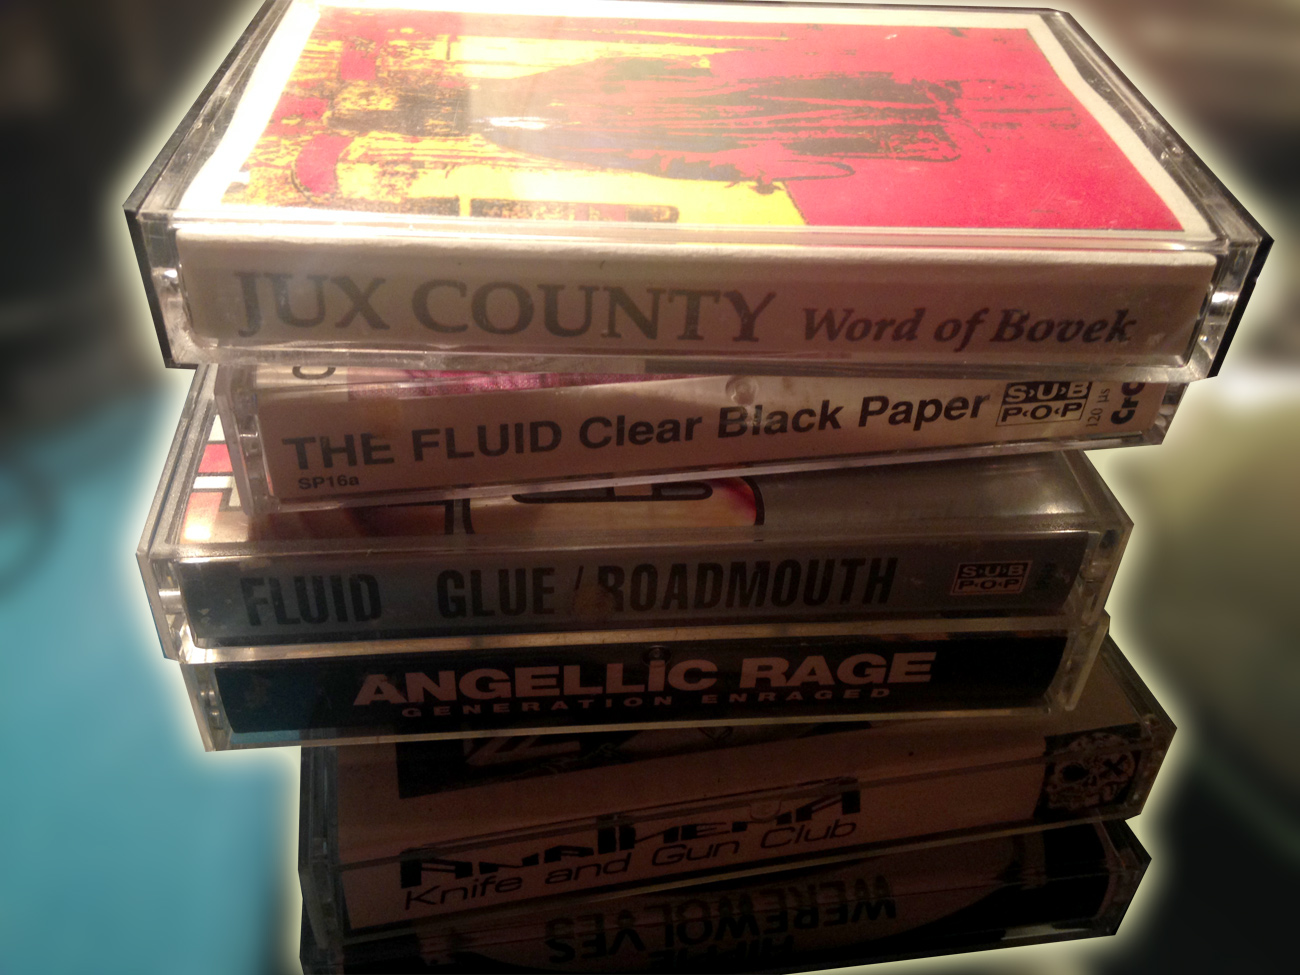 Cherished pieces of Denver music history purchased at Wax Trax sometime in our youth.